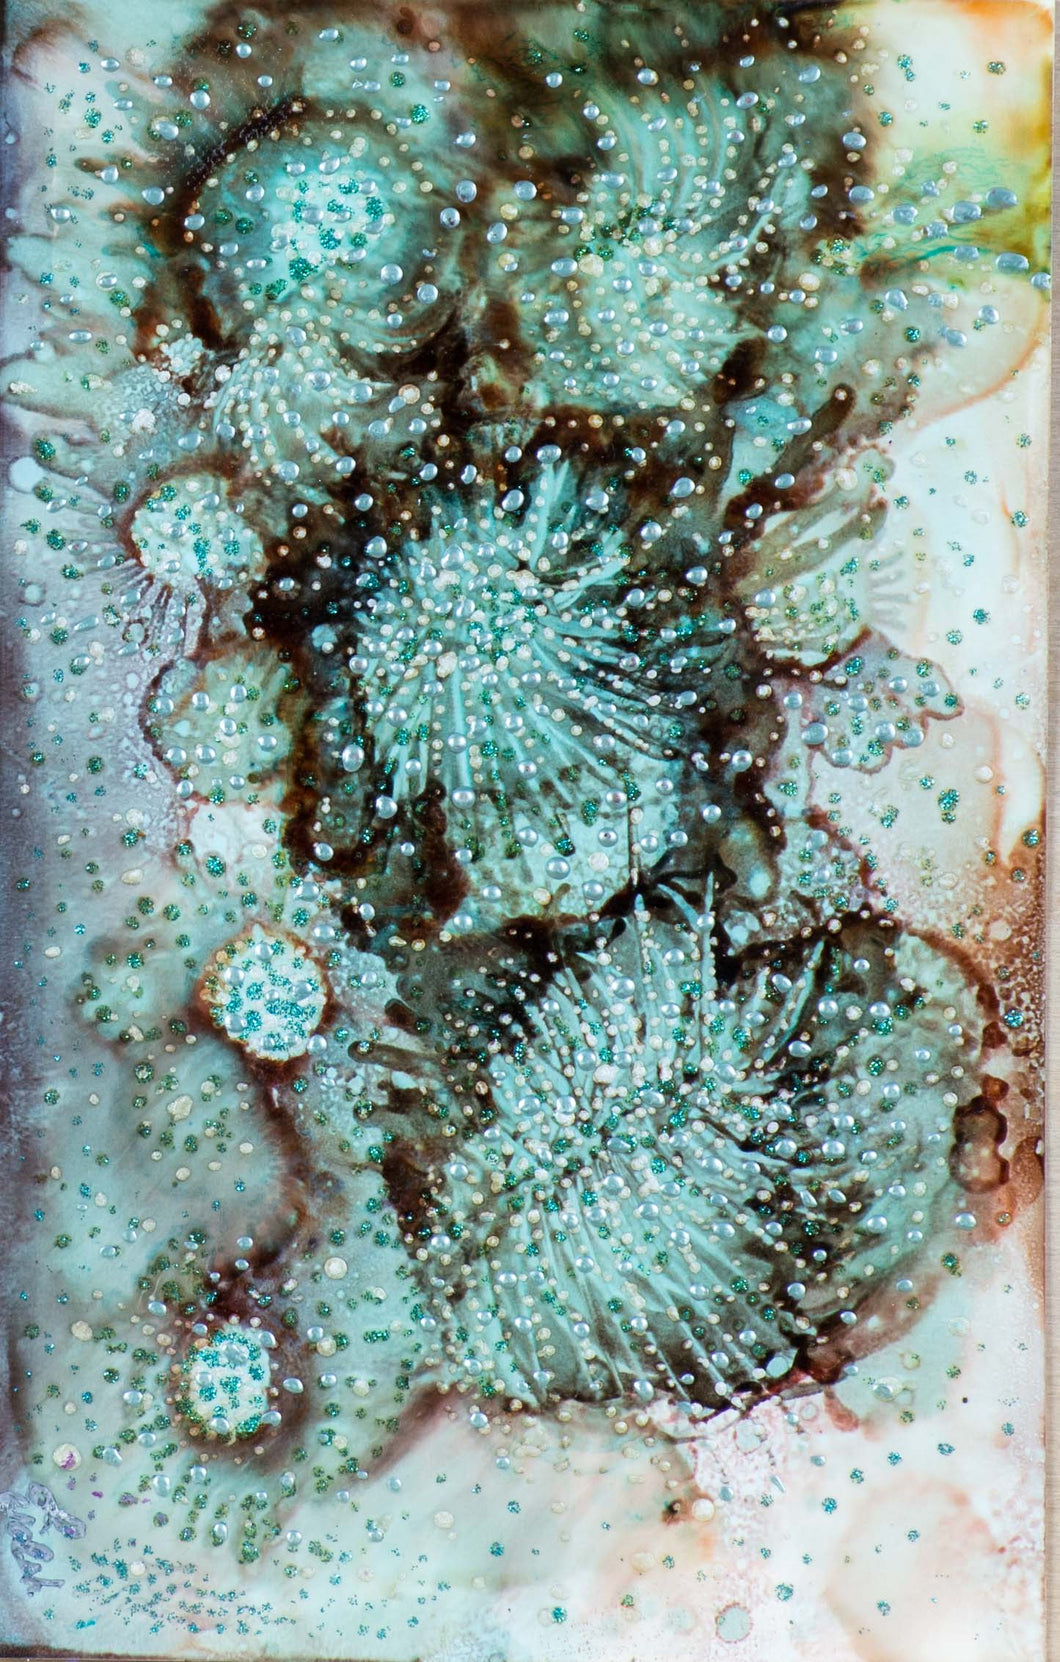 An alcohol ink of marine life with texture and color.